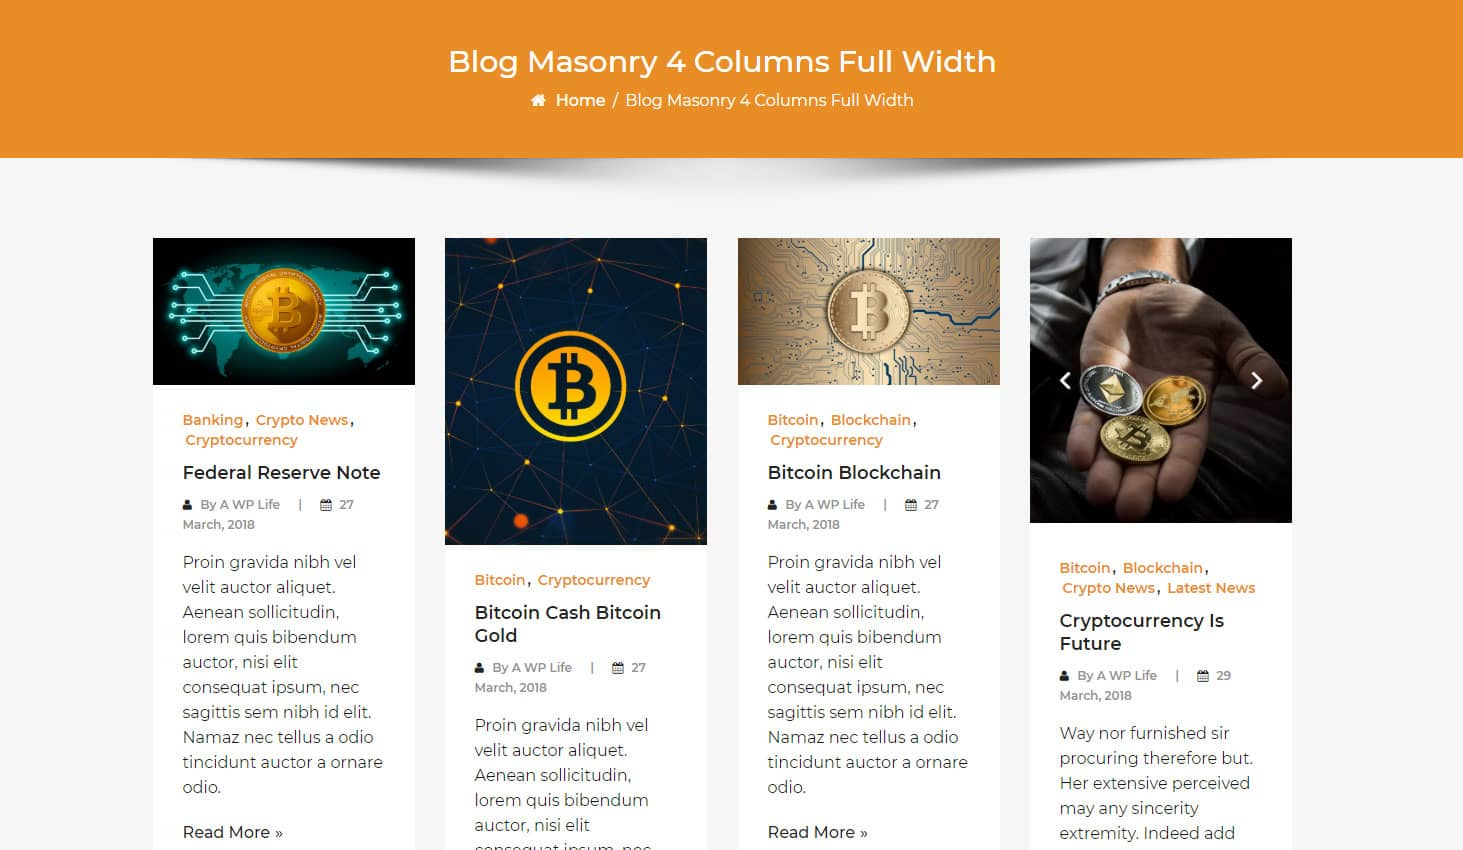 Crypto Premium WordPress Theme For Cryptocurrency Business and Blog Websites - A WP Life - Blog Masonry Four Column Layout Template